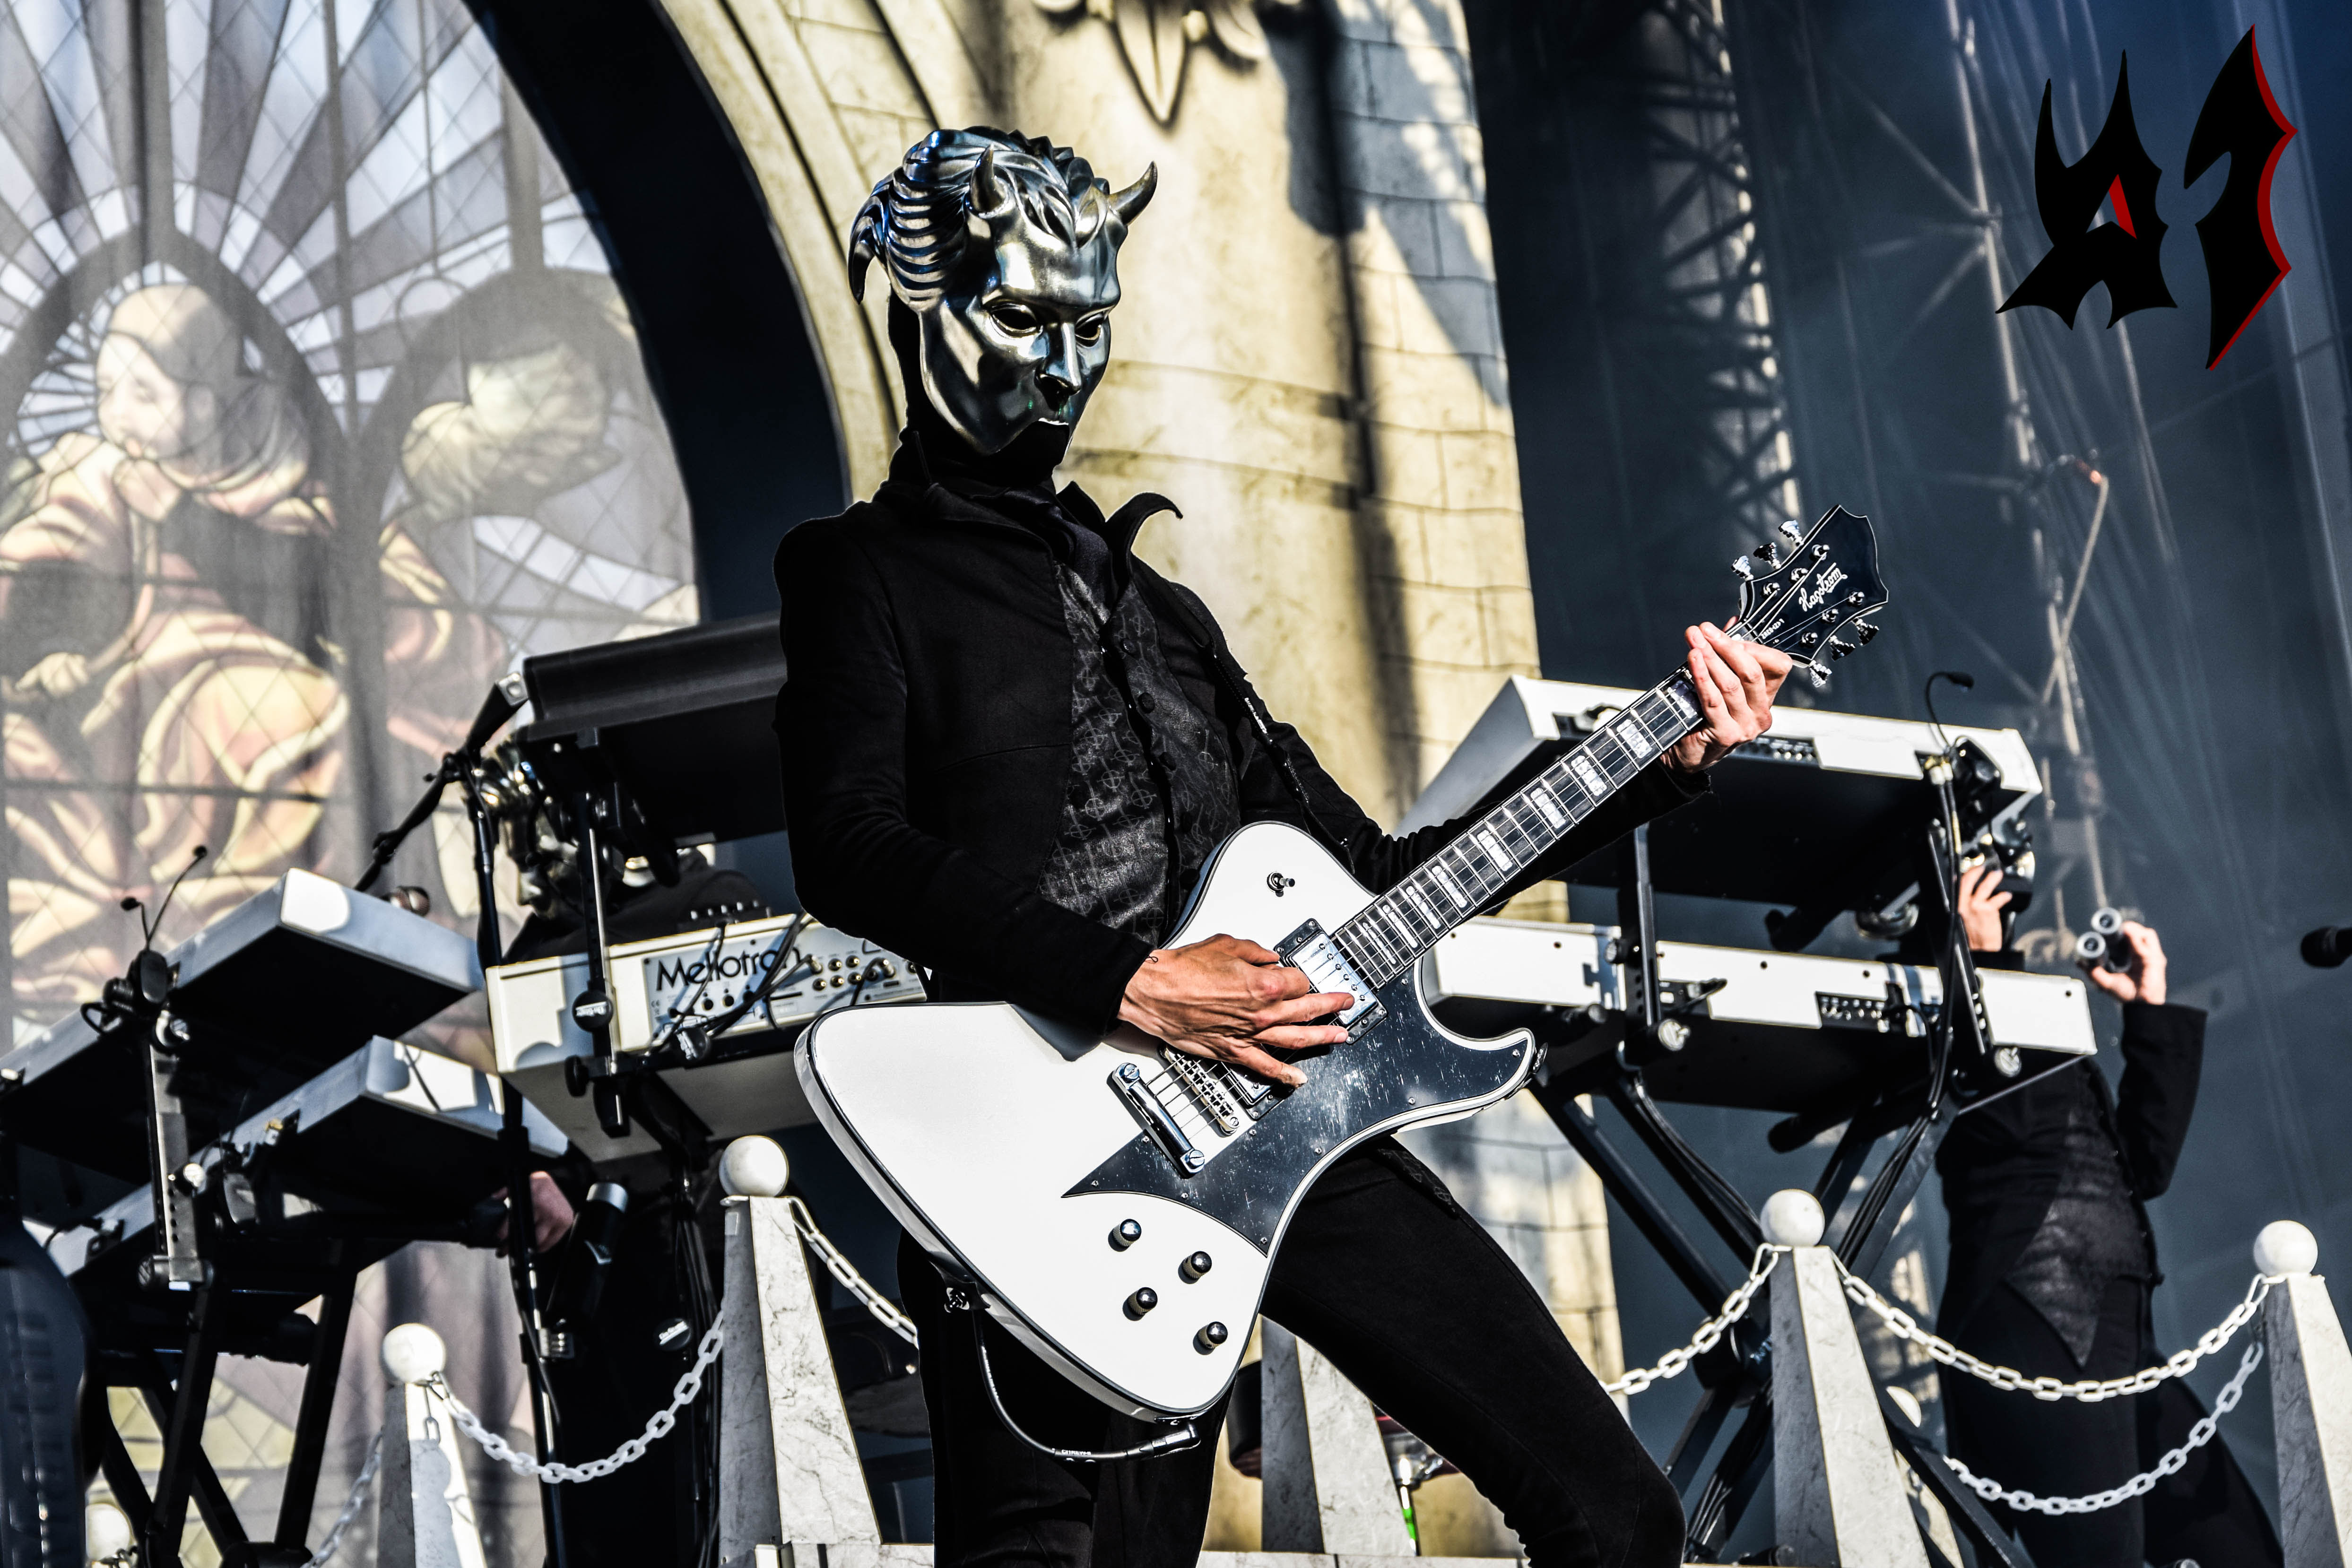 Donwload 2018 – Day 1 - Ghost 2